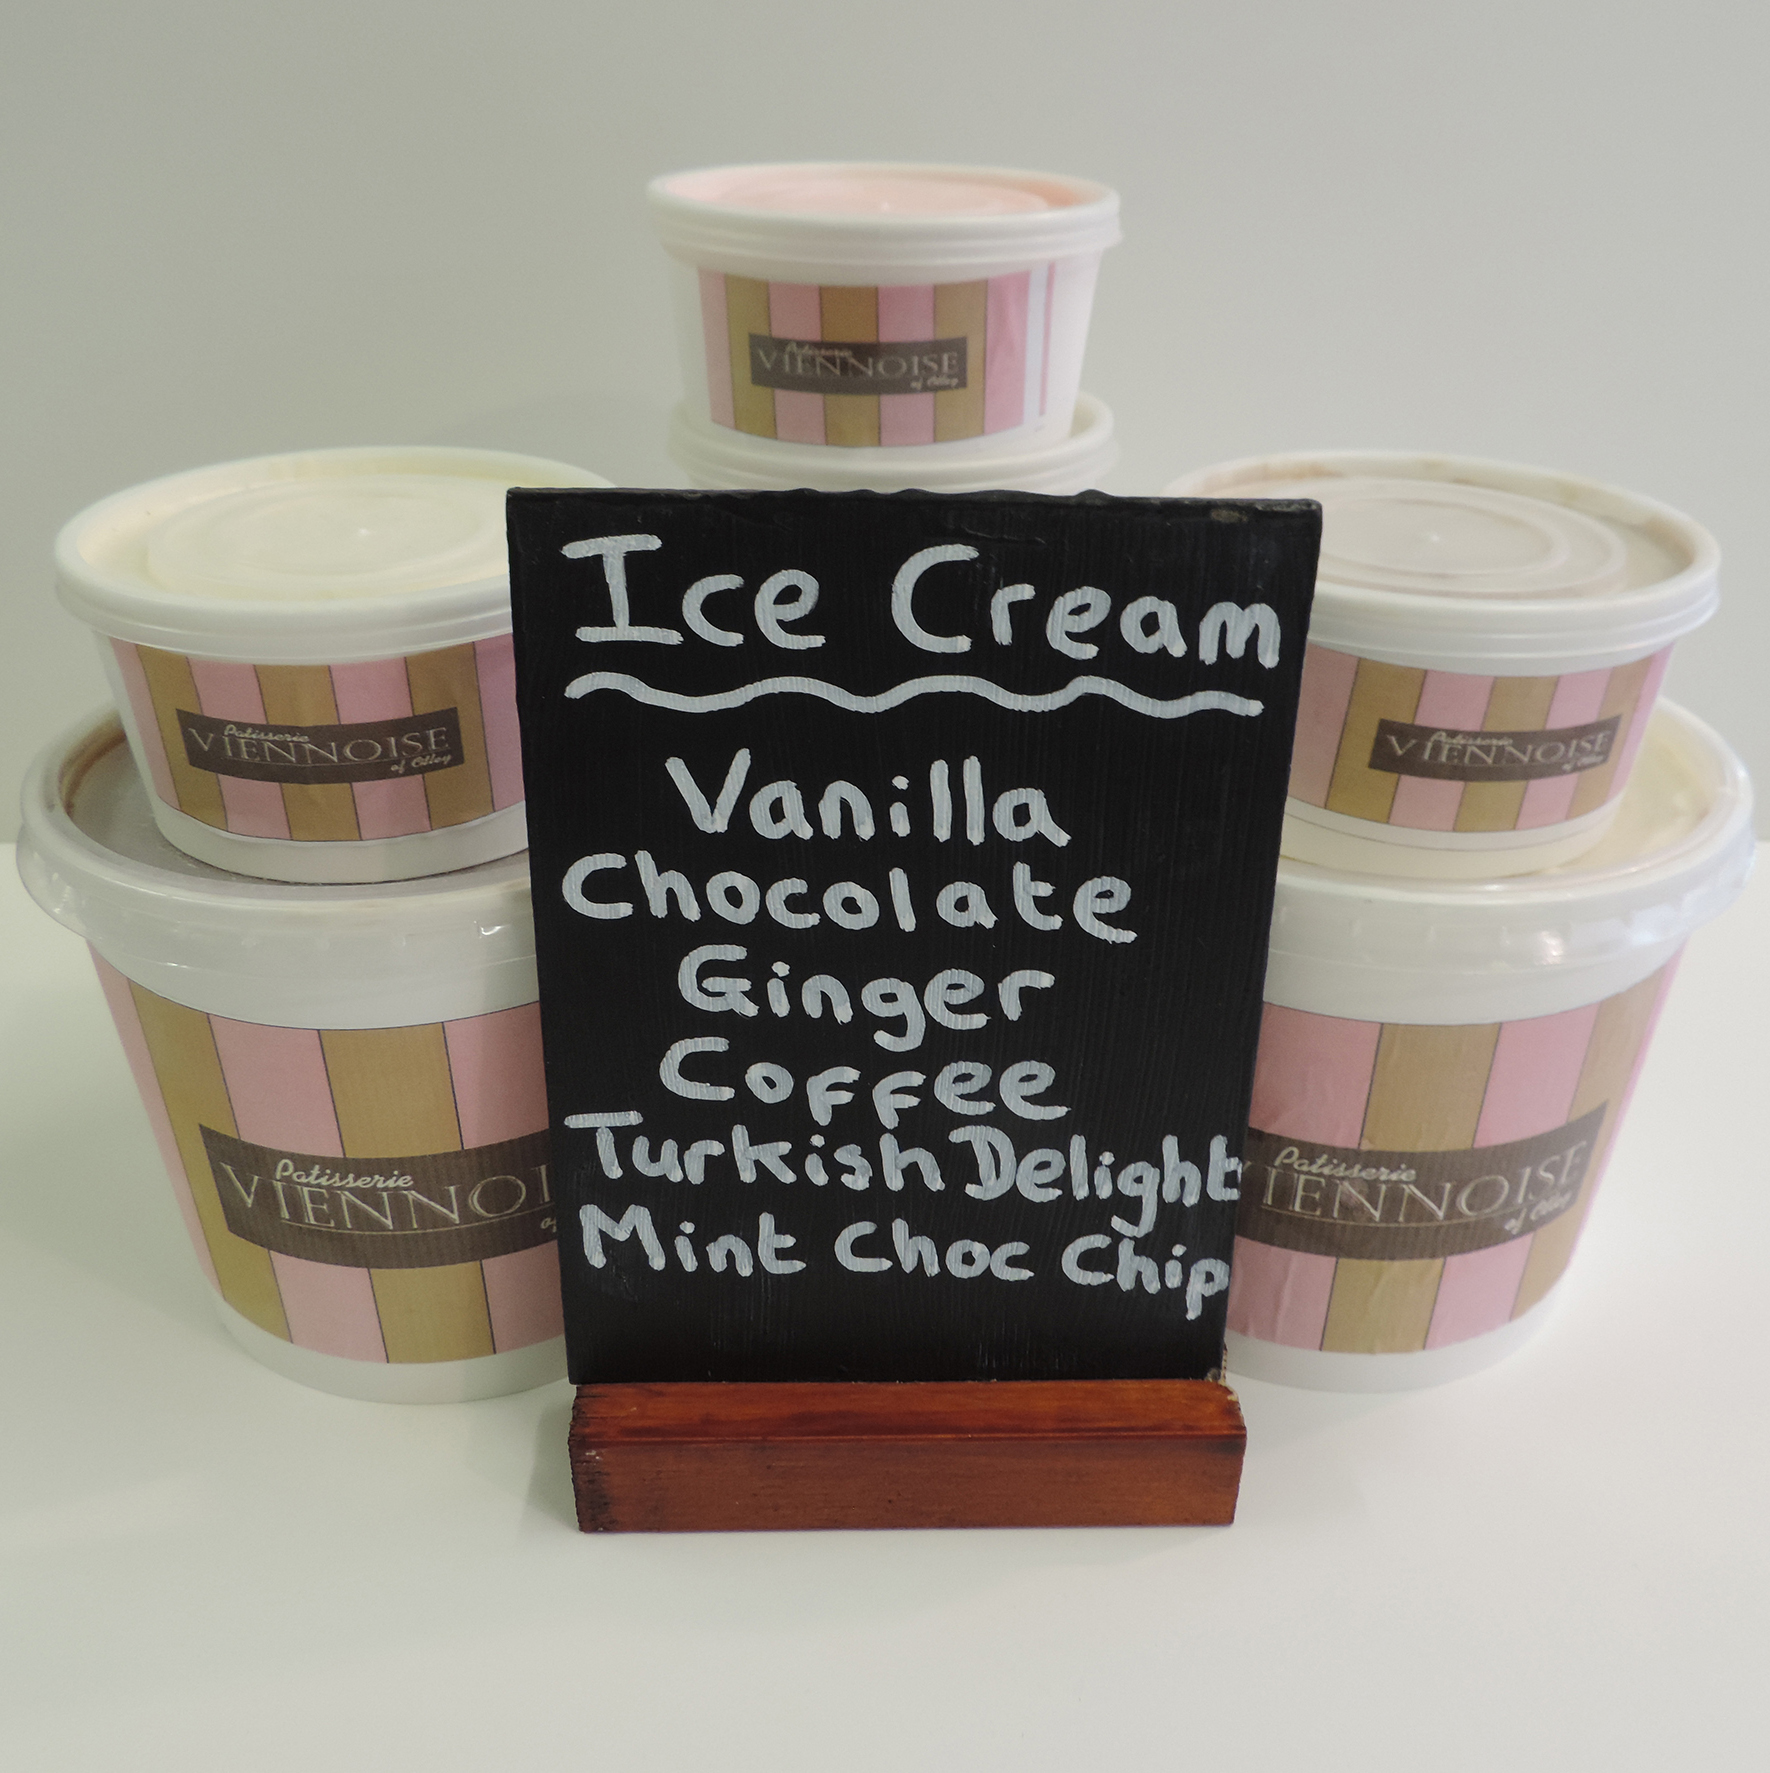 Selection of ice cream available at Patisserie Viennoise Otley